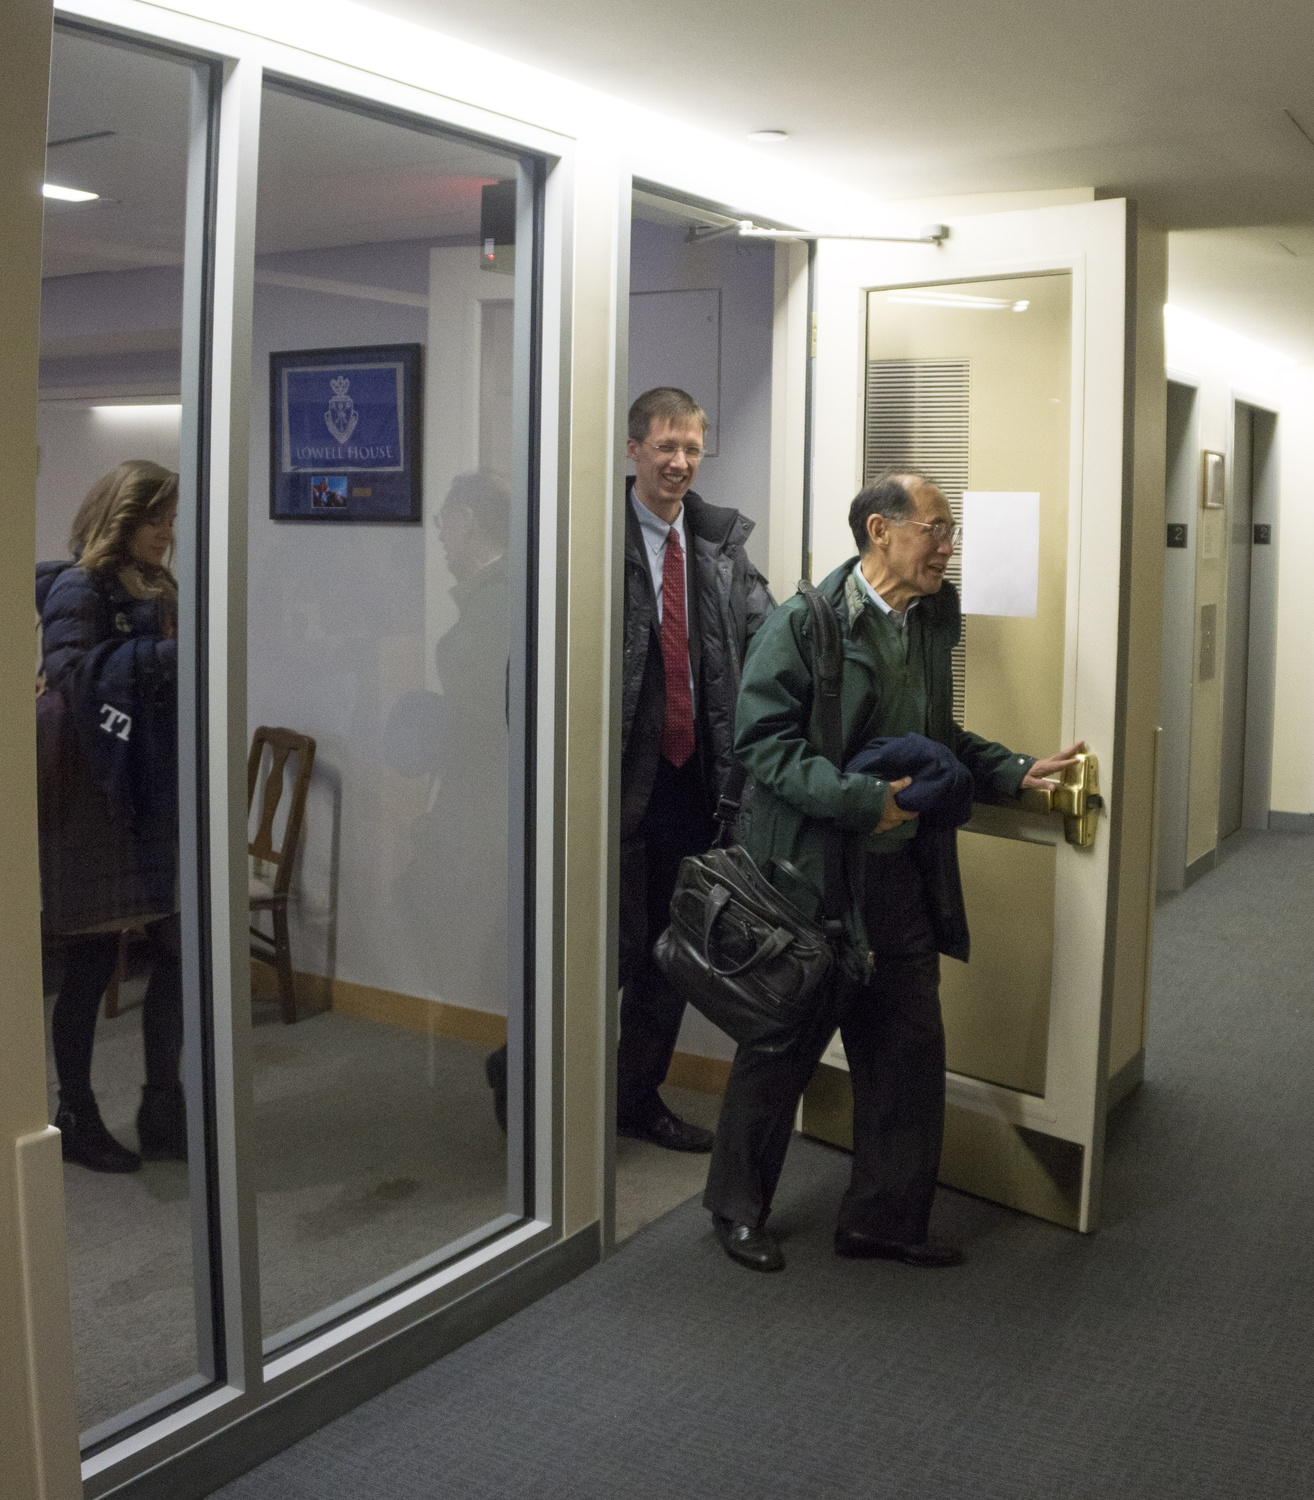 Harvard University Lawyer William F. Lee and Lowell House Tutor and Pre-Law Advisor Sandy Alexander exit the Pechet Room in Lowell House after an hour-long, off-the-record discussion of the admissions lawsuit.